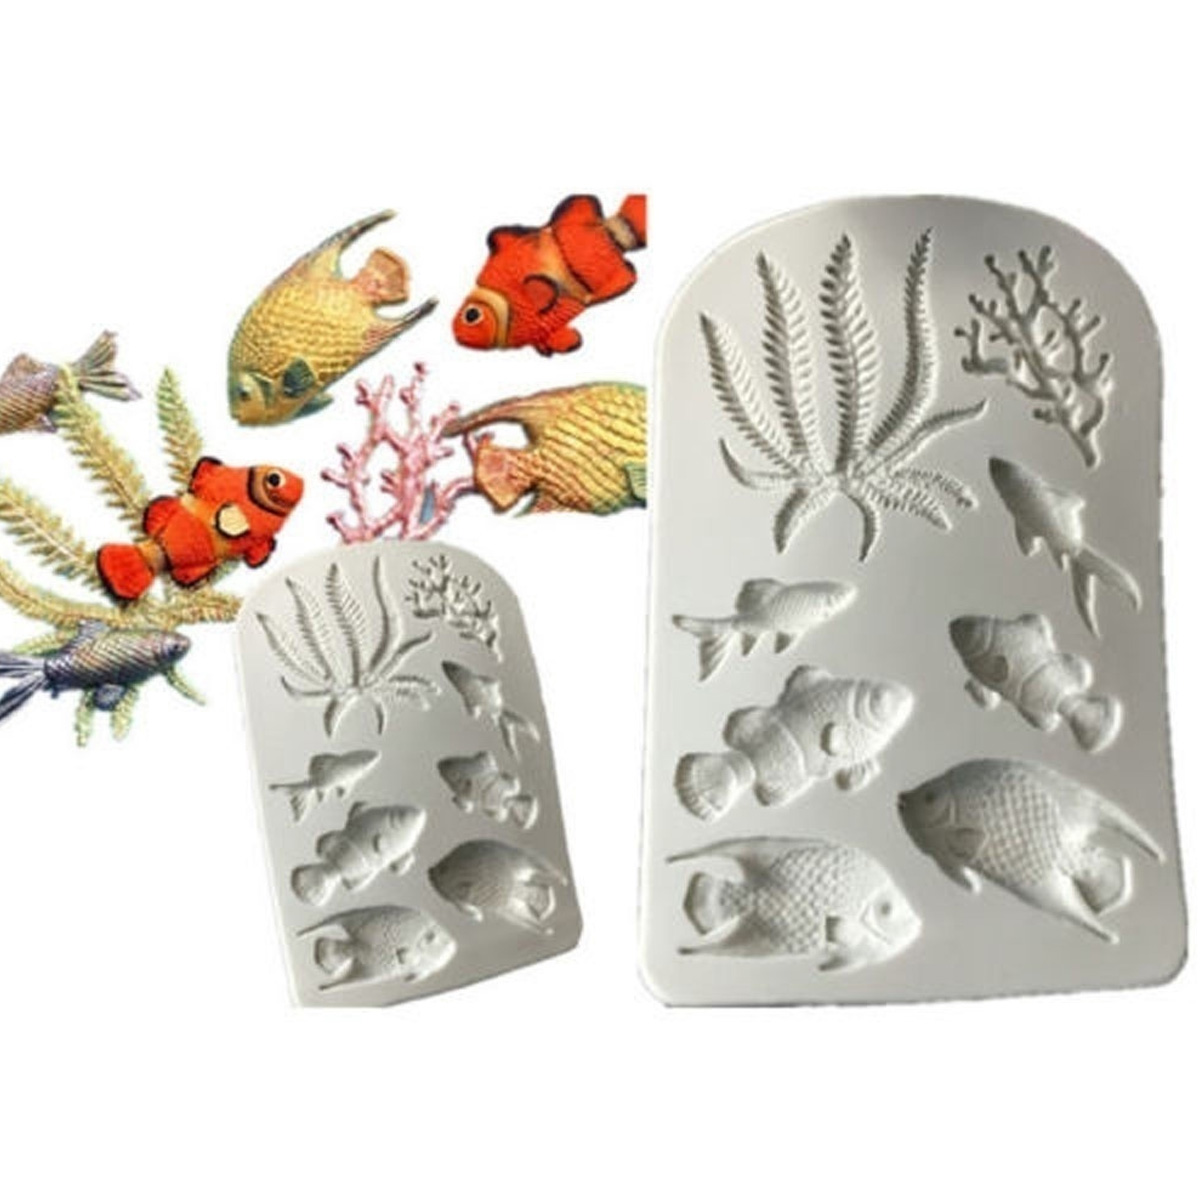 3D Sea Coral Fish Silicone Mold Fondant Mold Cake Decorating Tools Mould